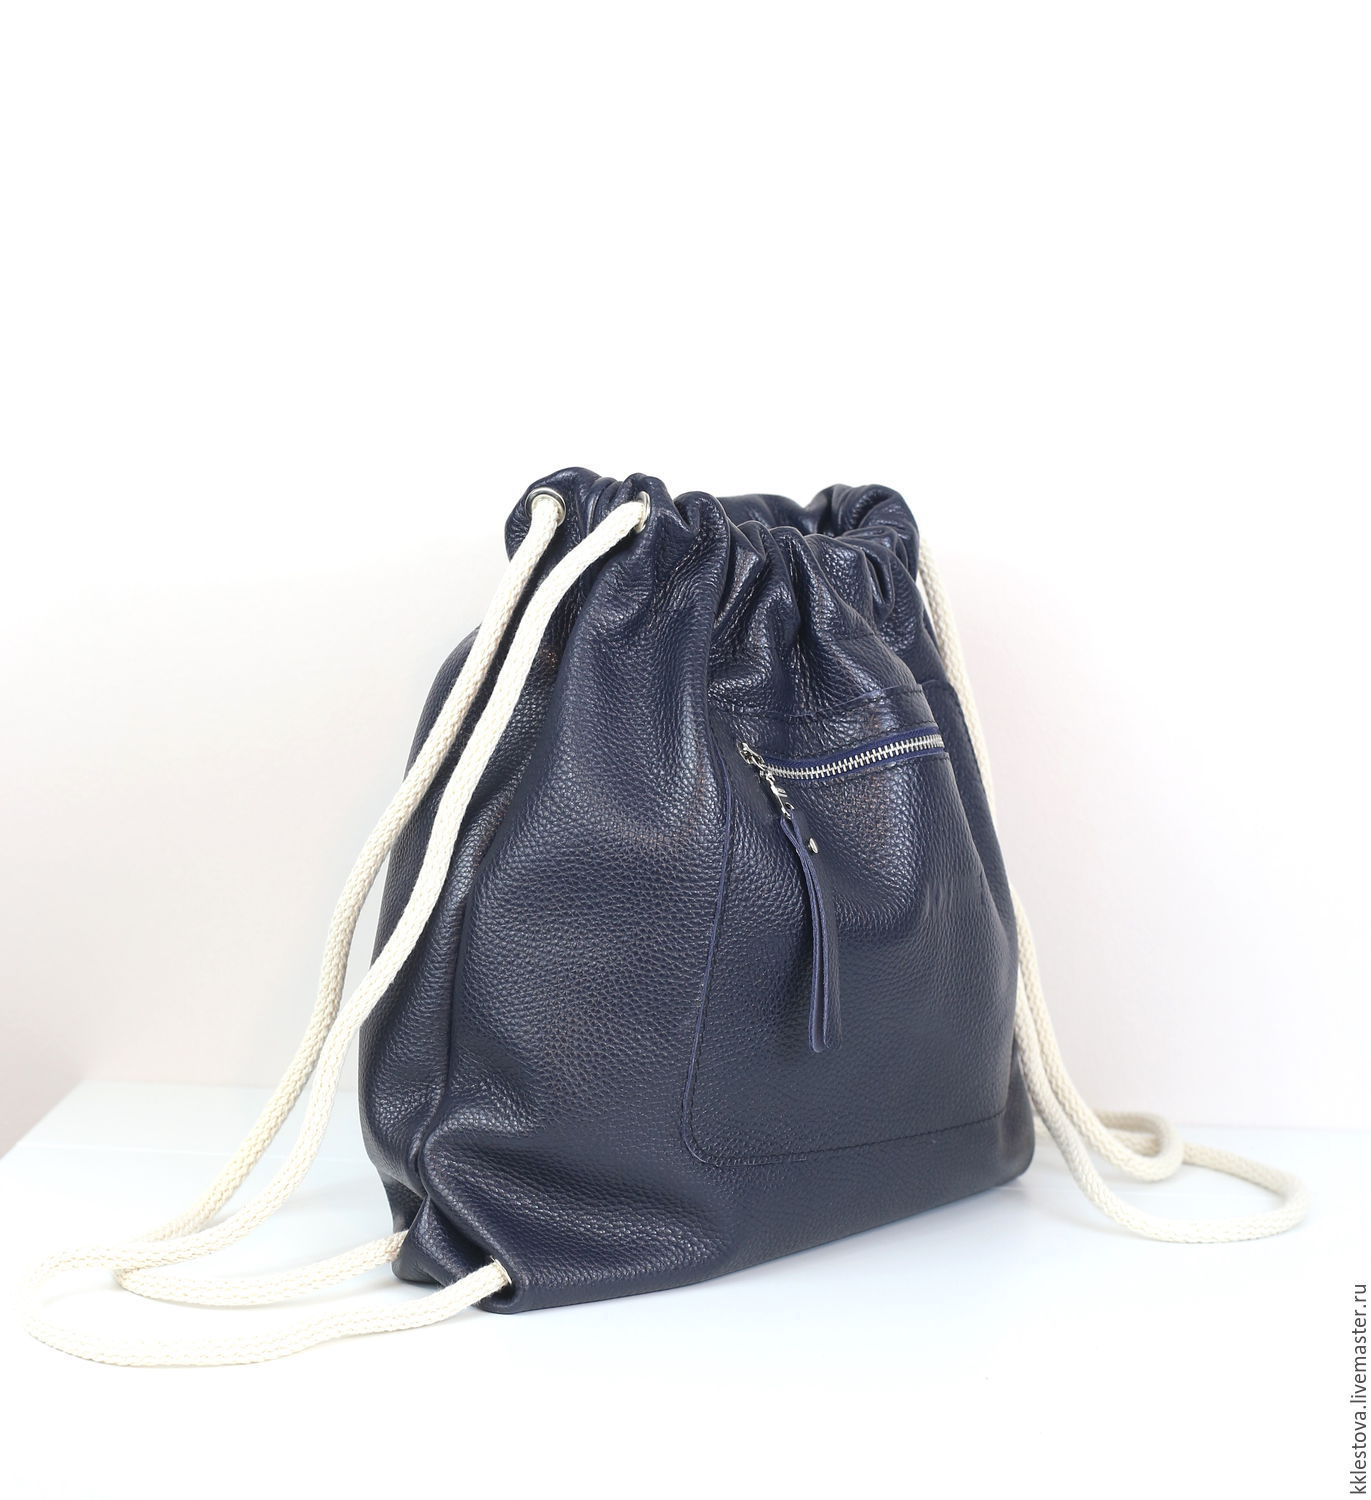 Blue Backpack small leather Bag with pocket, Backpacks, Moscow,  Фото №1